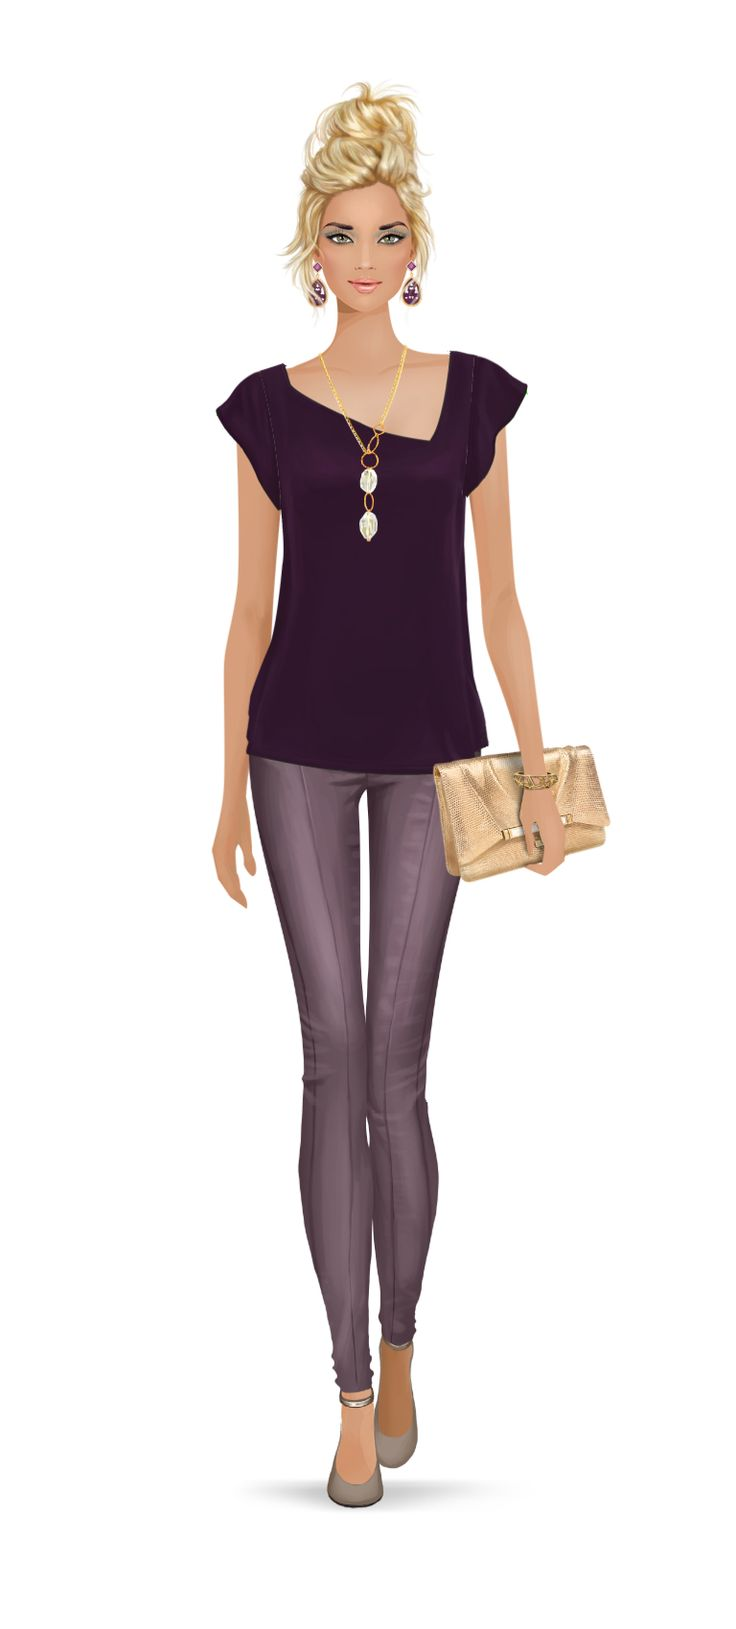 1926 Best Black Barbie Images On Pinterest Fashion Games Covet Fashion And Baby Blue